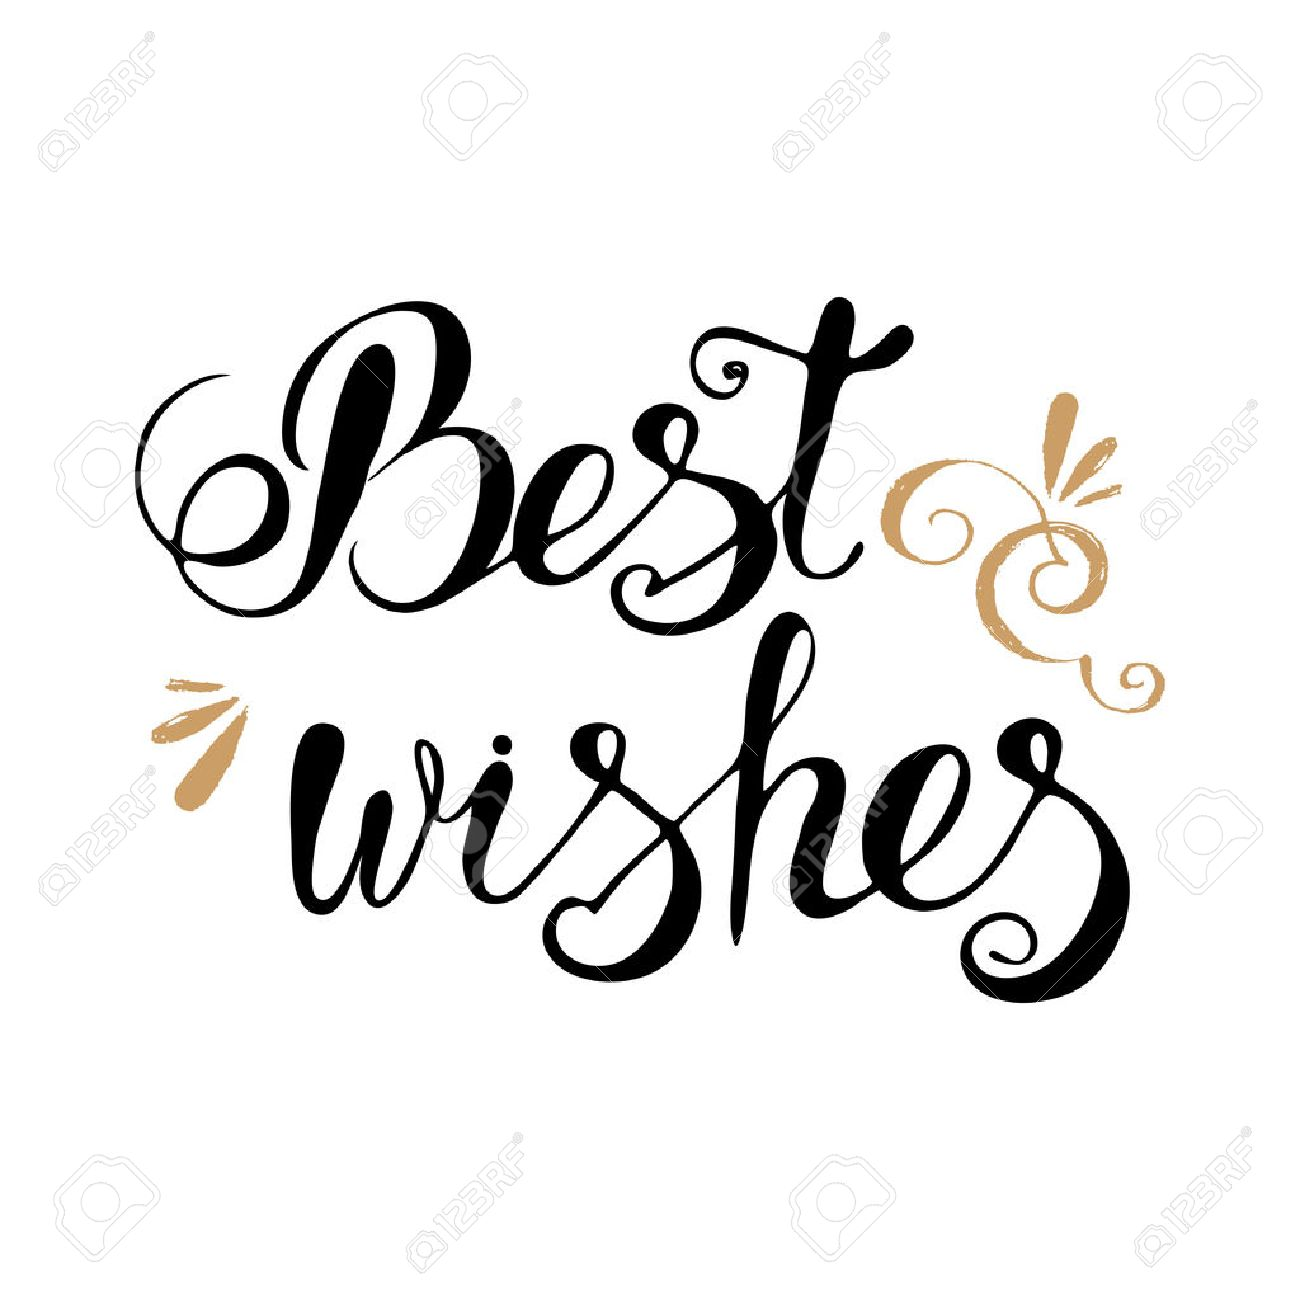 best wishes lettering typography clip art for cards royalty free rh 123rf com best free clip art images best free clipart downloads